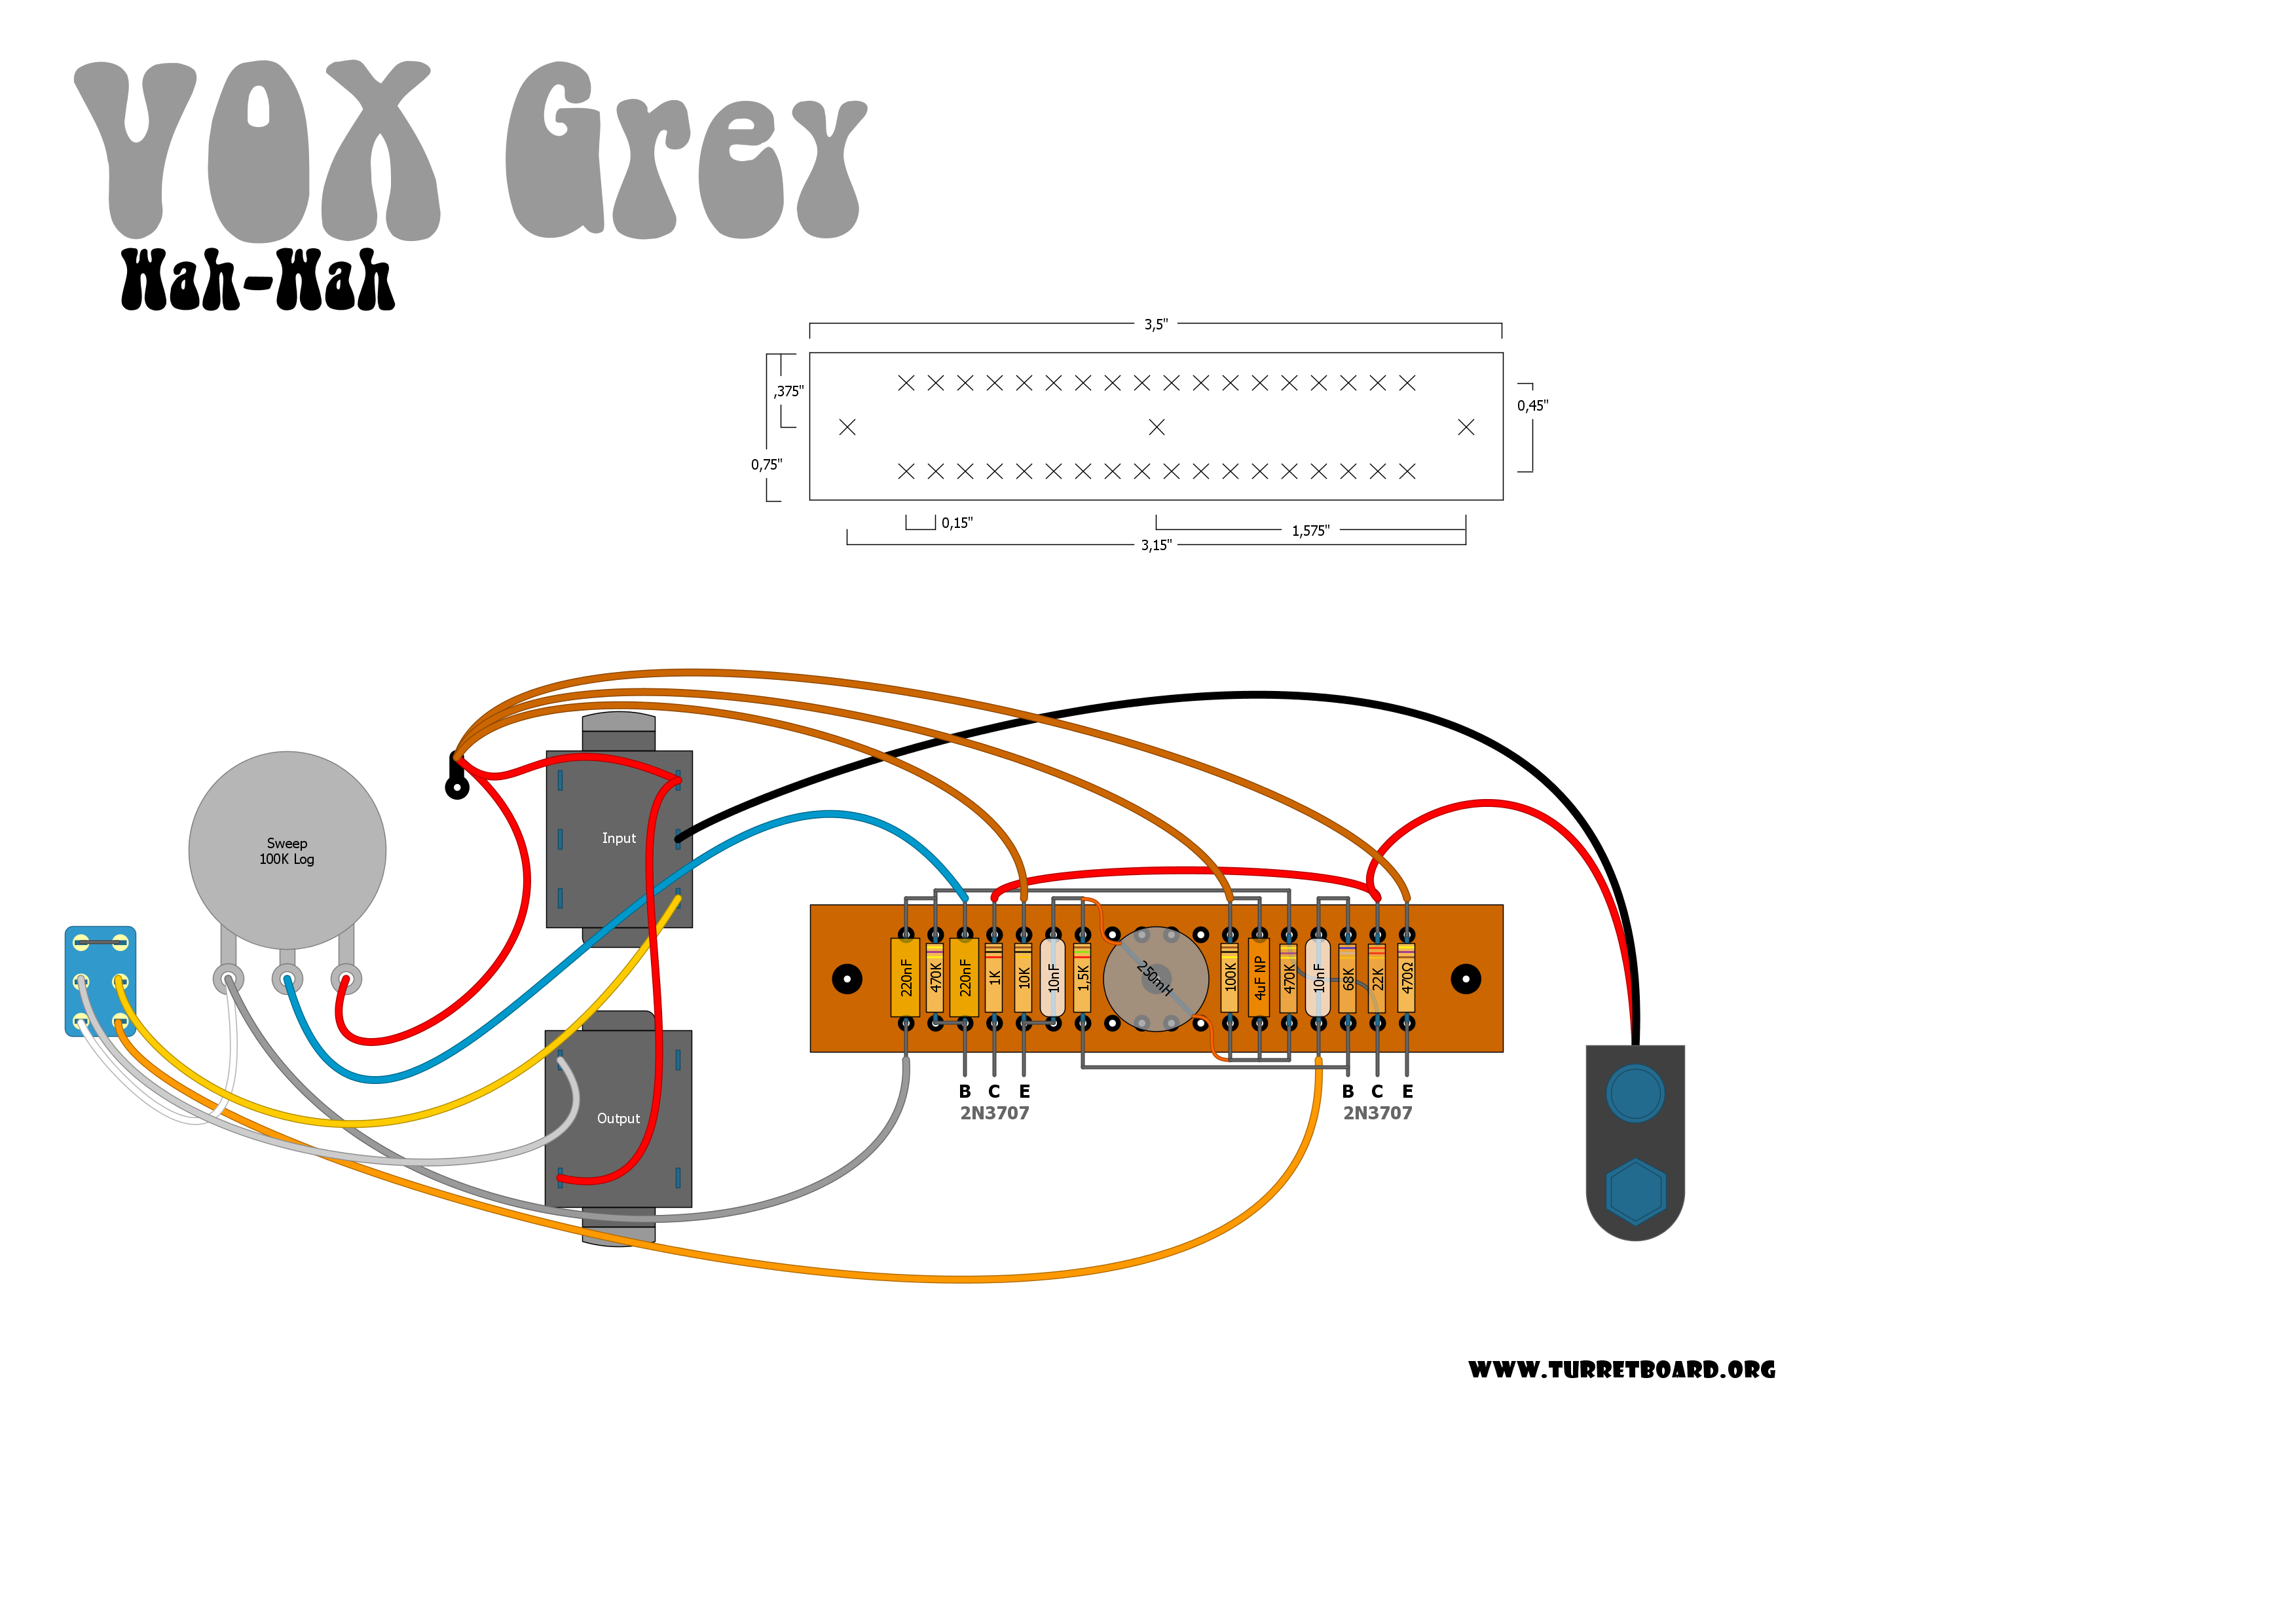 Gas Pedal Schematic additionally Tube Delay Pedal Schematic further Waheq together with Vox Wah Schematic additionally Kevin Shields. on wah volume pedal schematic